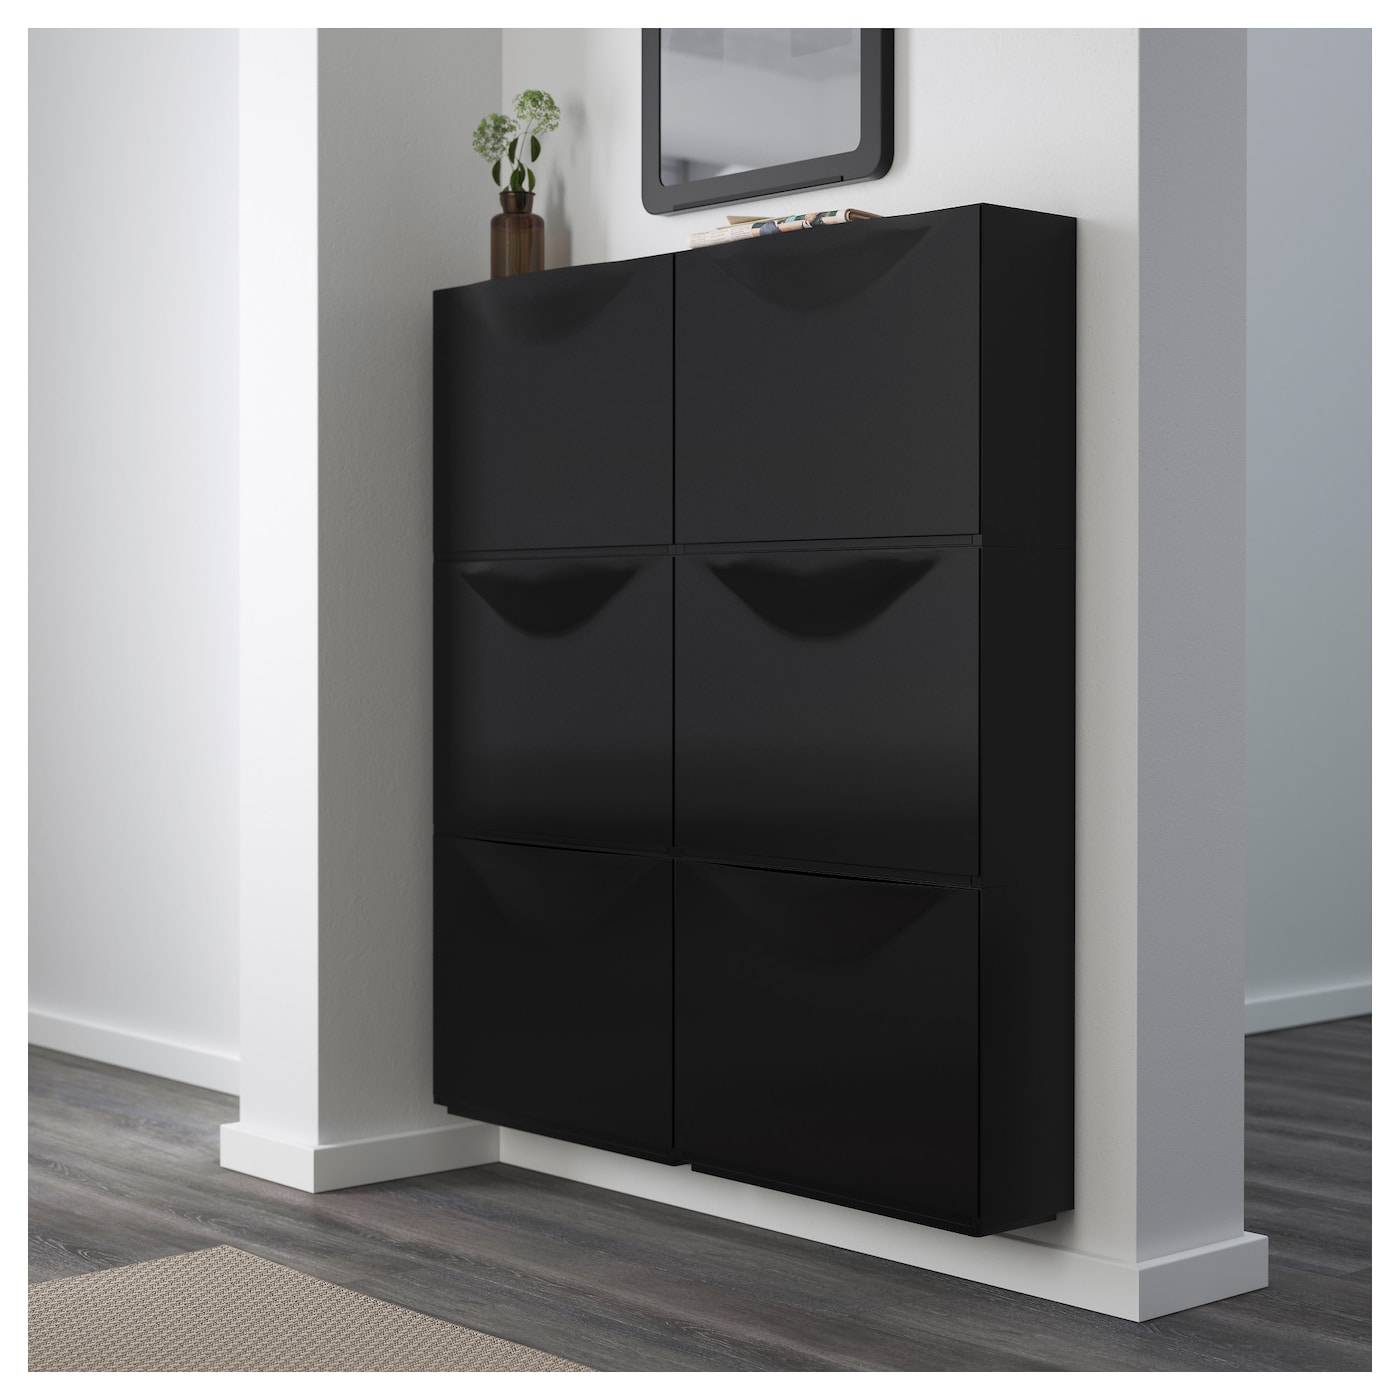 trones shoe cabinet storage black 51x39 cm ikea. Black Bedroom Furniture Sets. Home Design Ideas